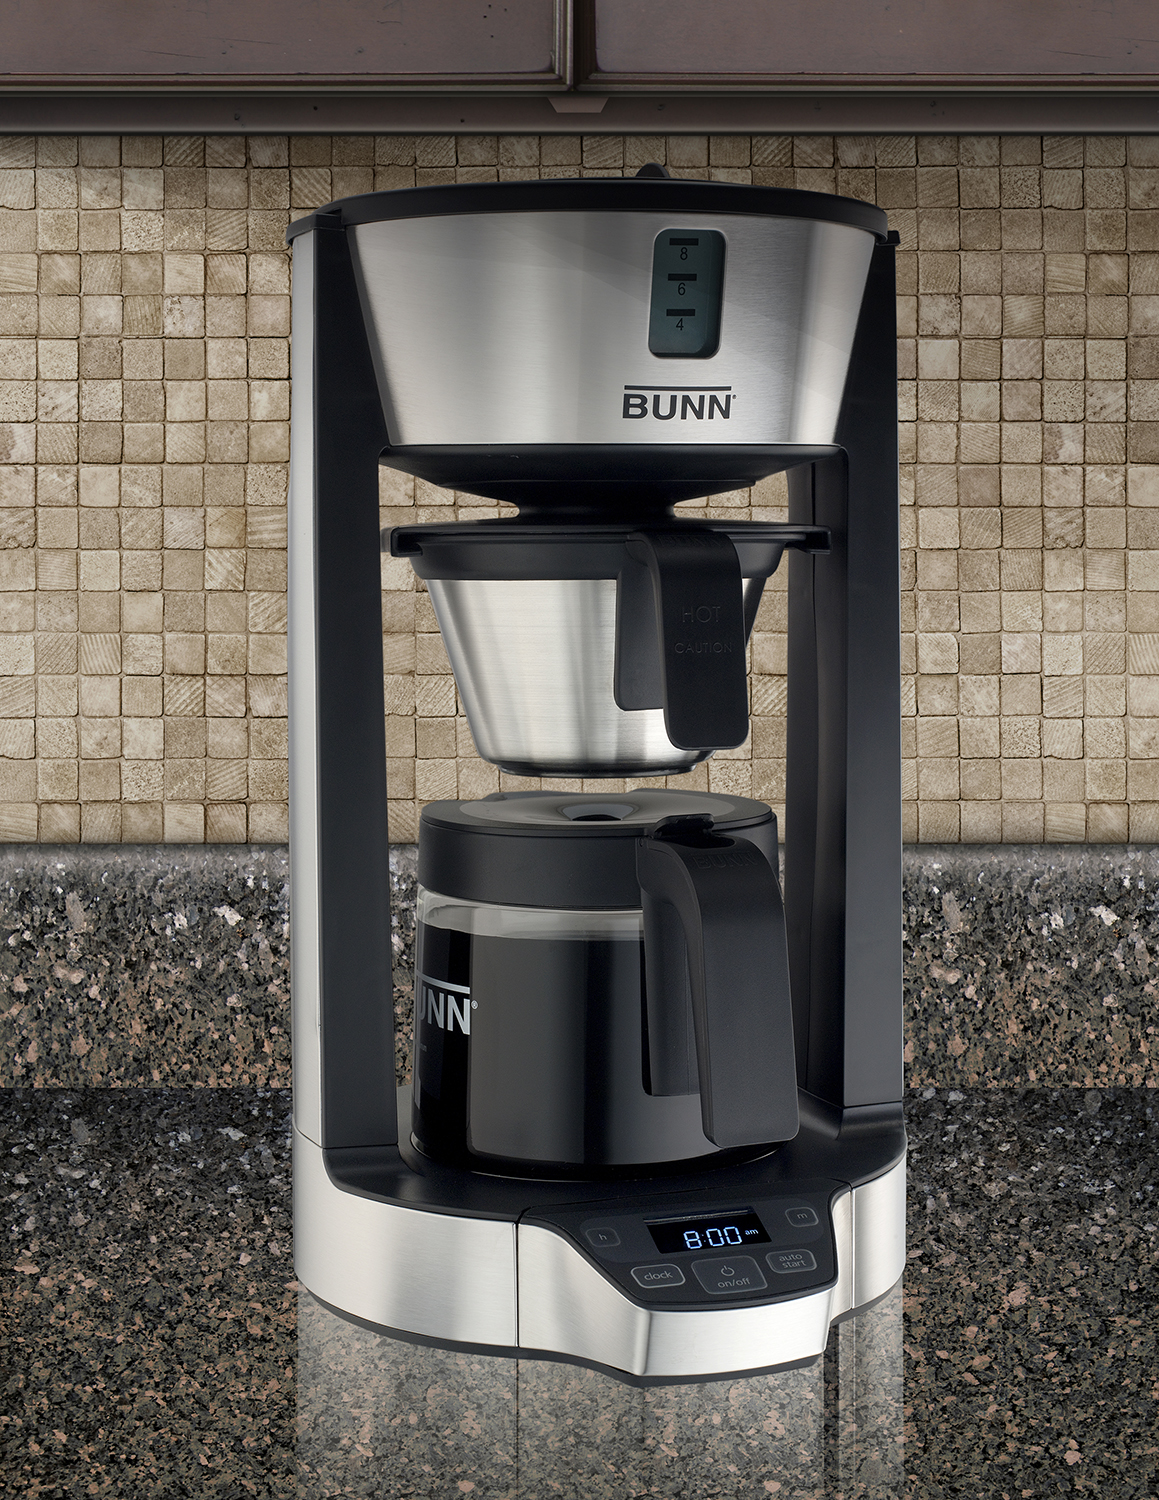 Bunn 174 Offers New Technology For Better Coffee Brewing